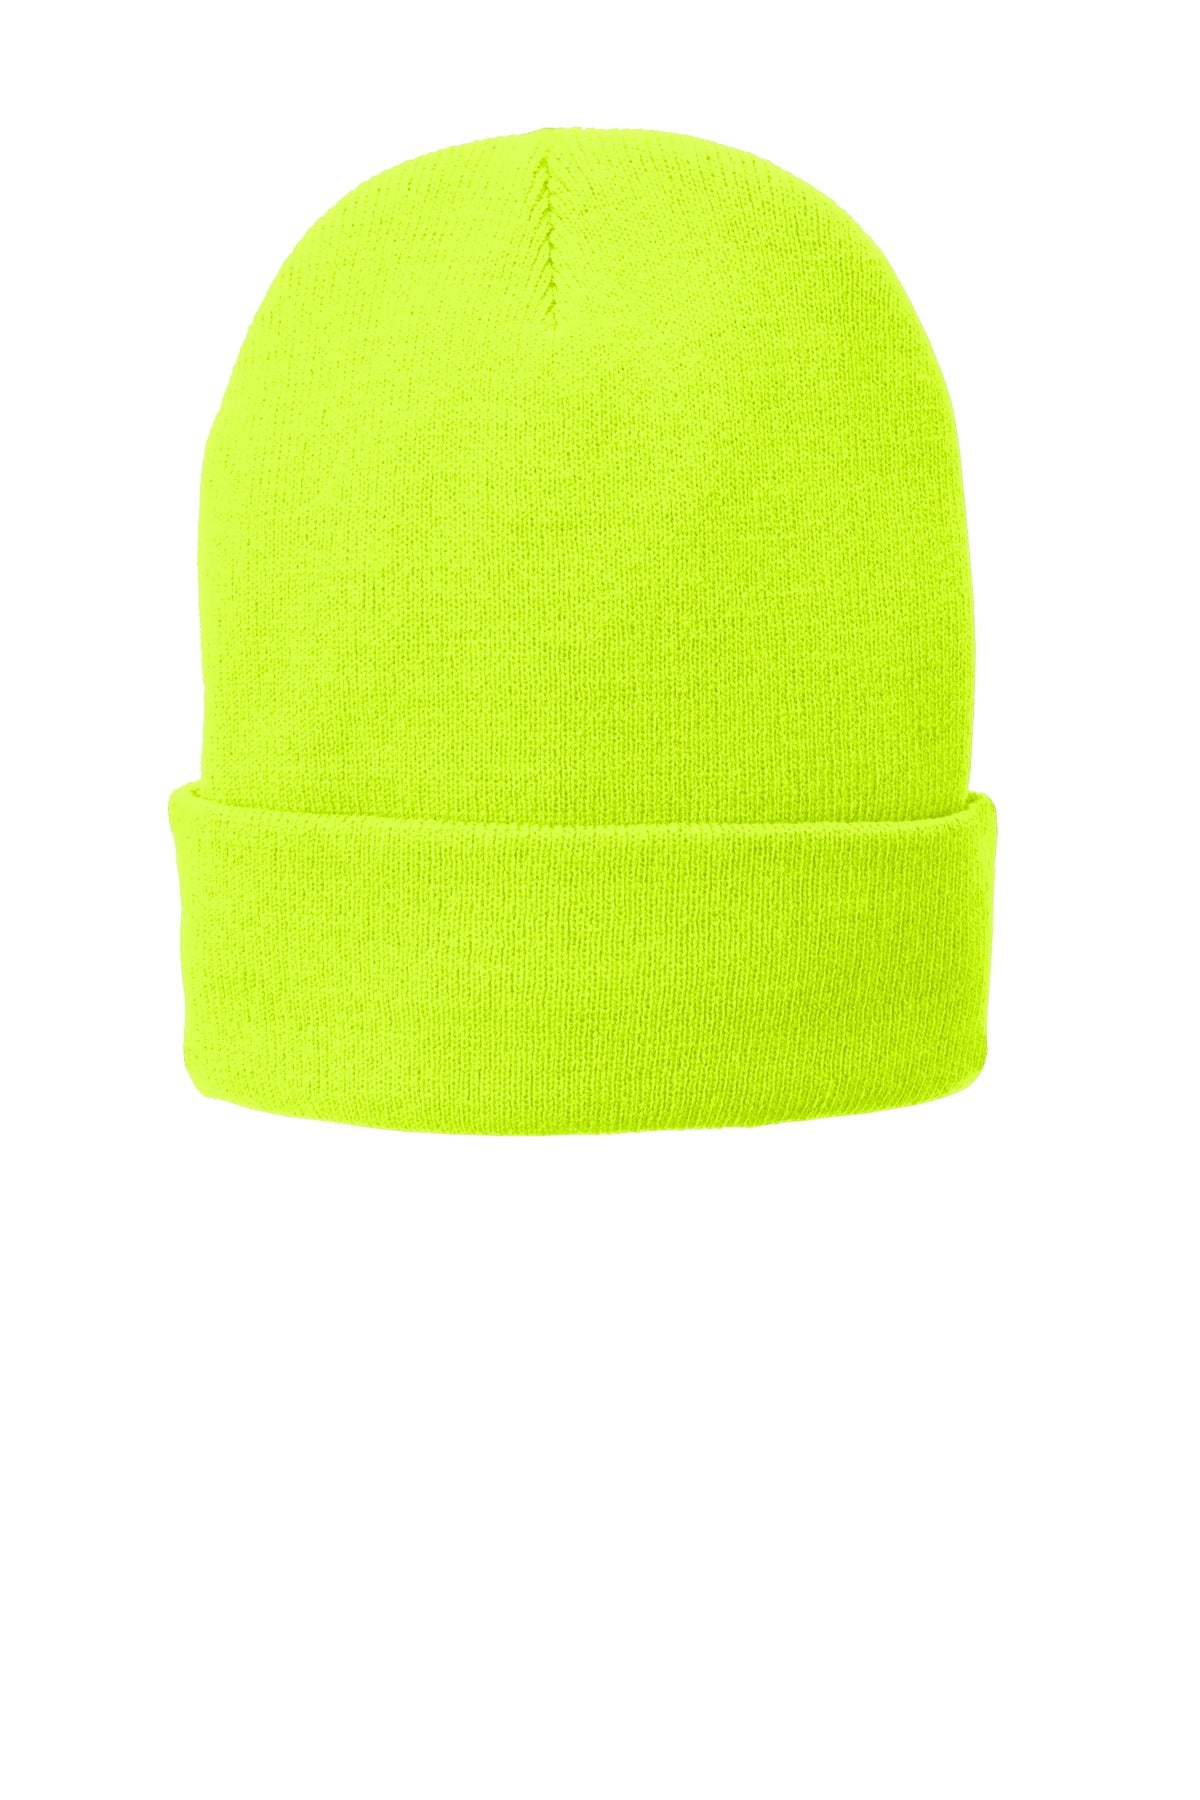 Port   Company Fleece-Lined Knit Cap CP90L Neon Yellow Port ... bed9b1939b86